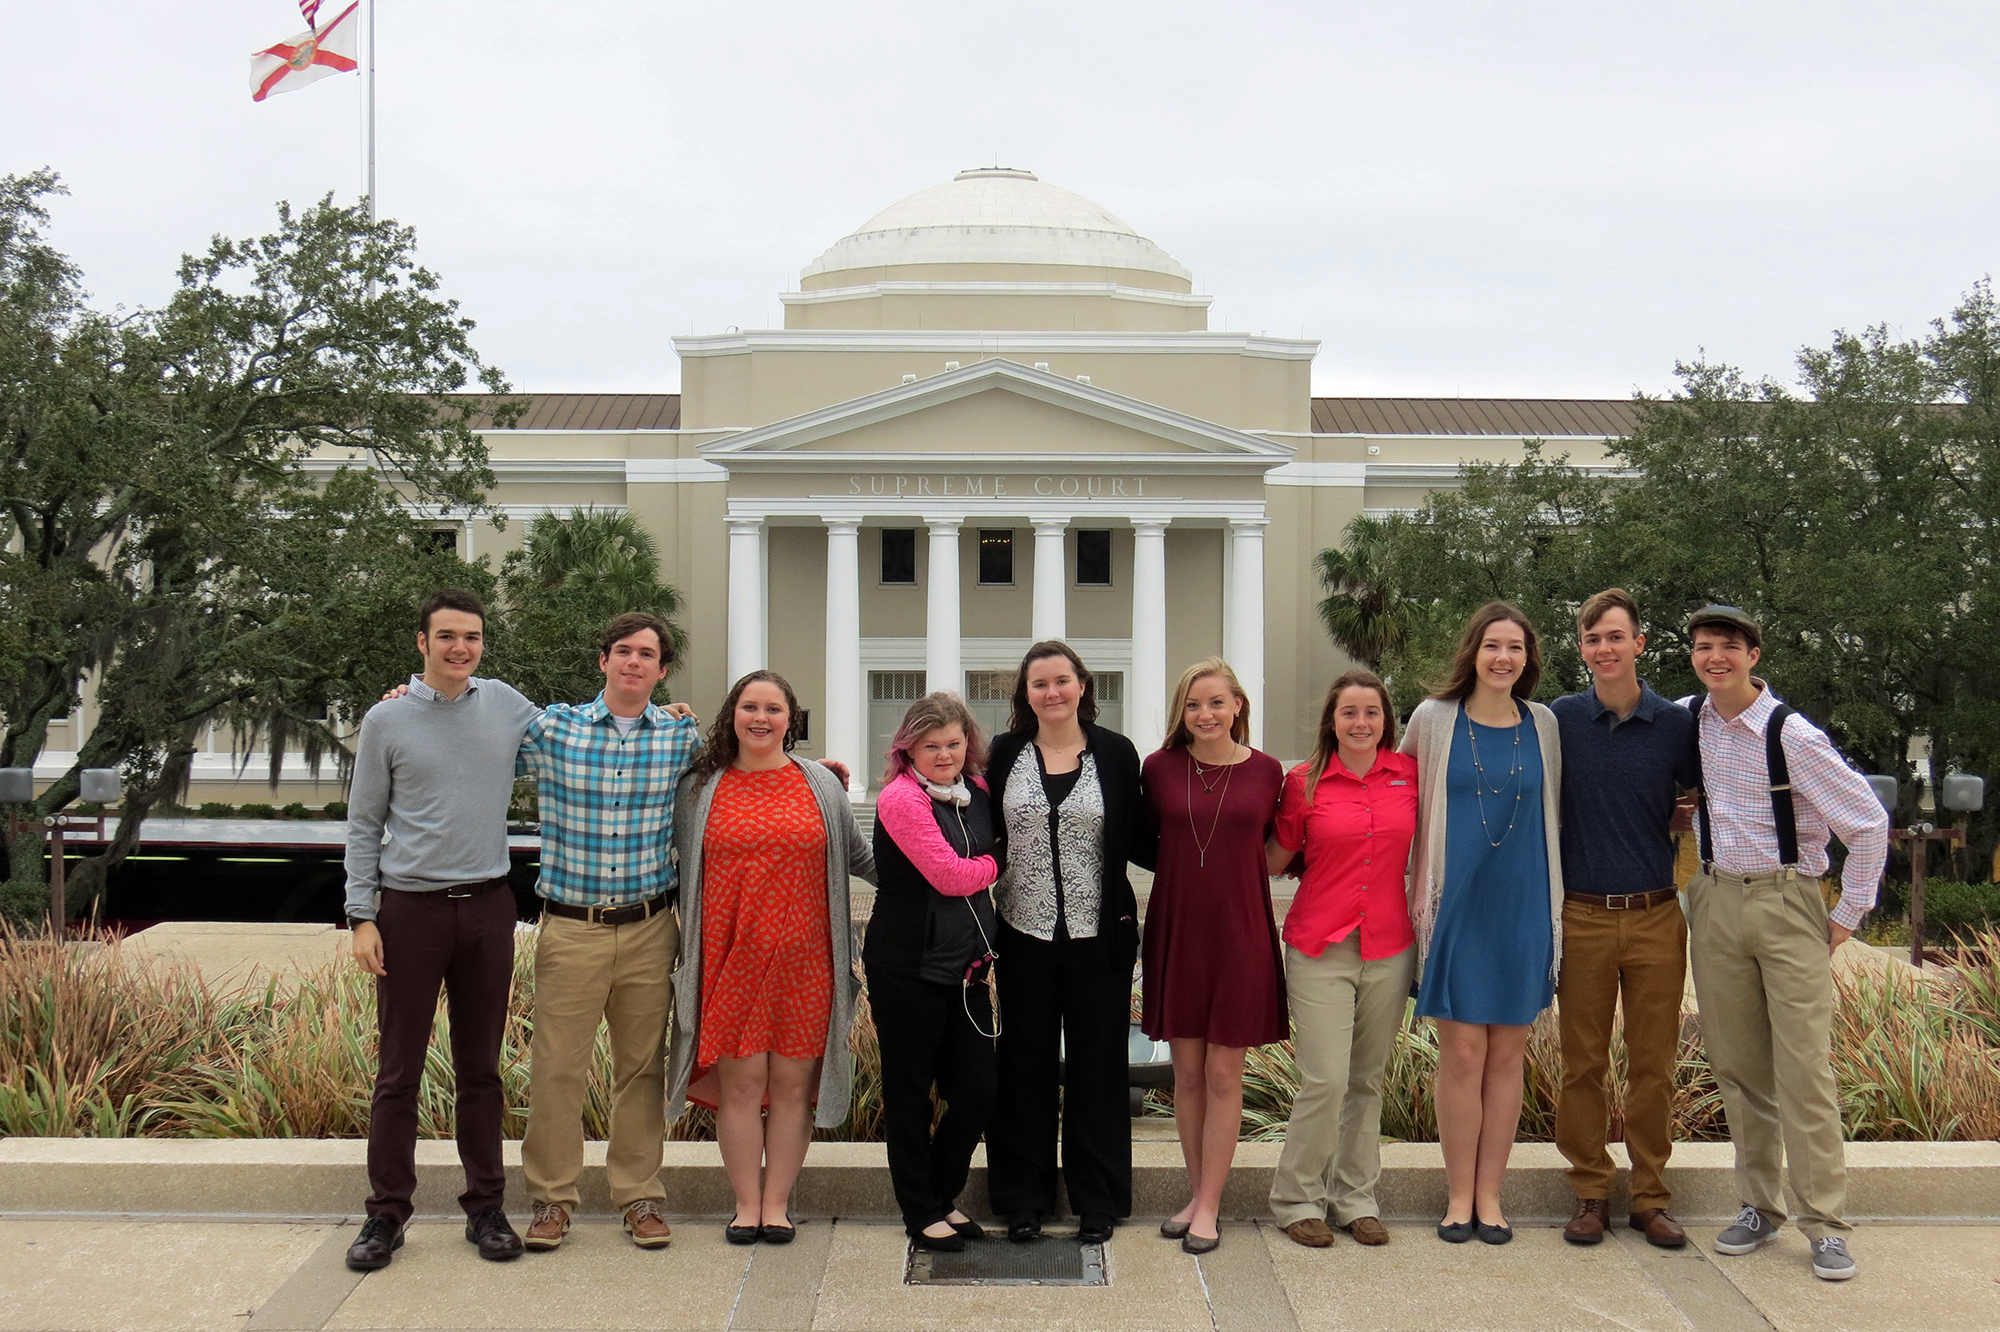 students with supreme court in front of building